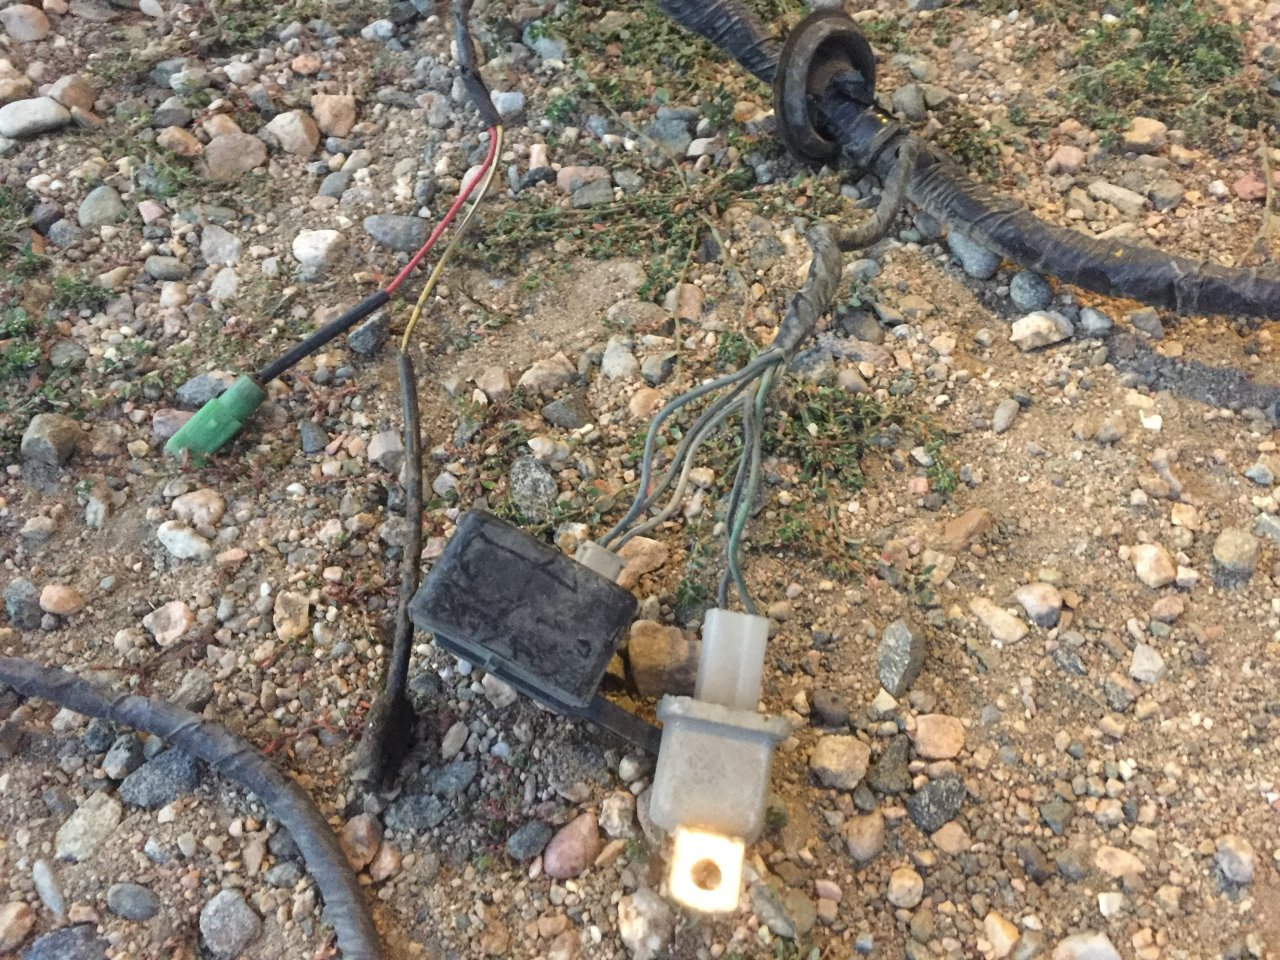 For Sale 1977 Fj40 Wiring Harness Complete Ih8mud Forum Img 2651